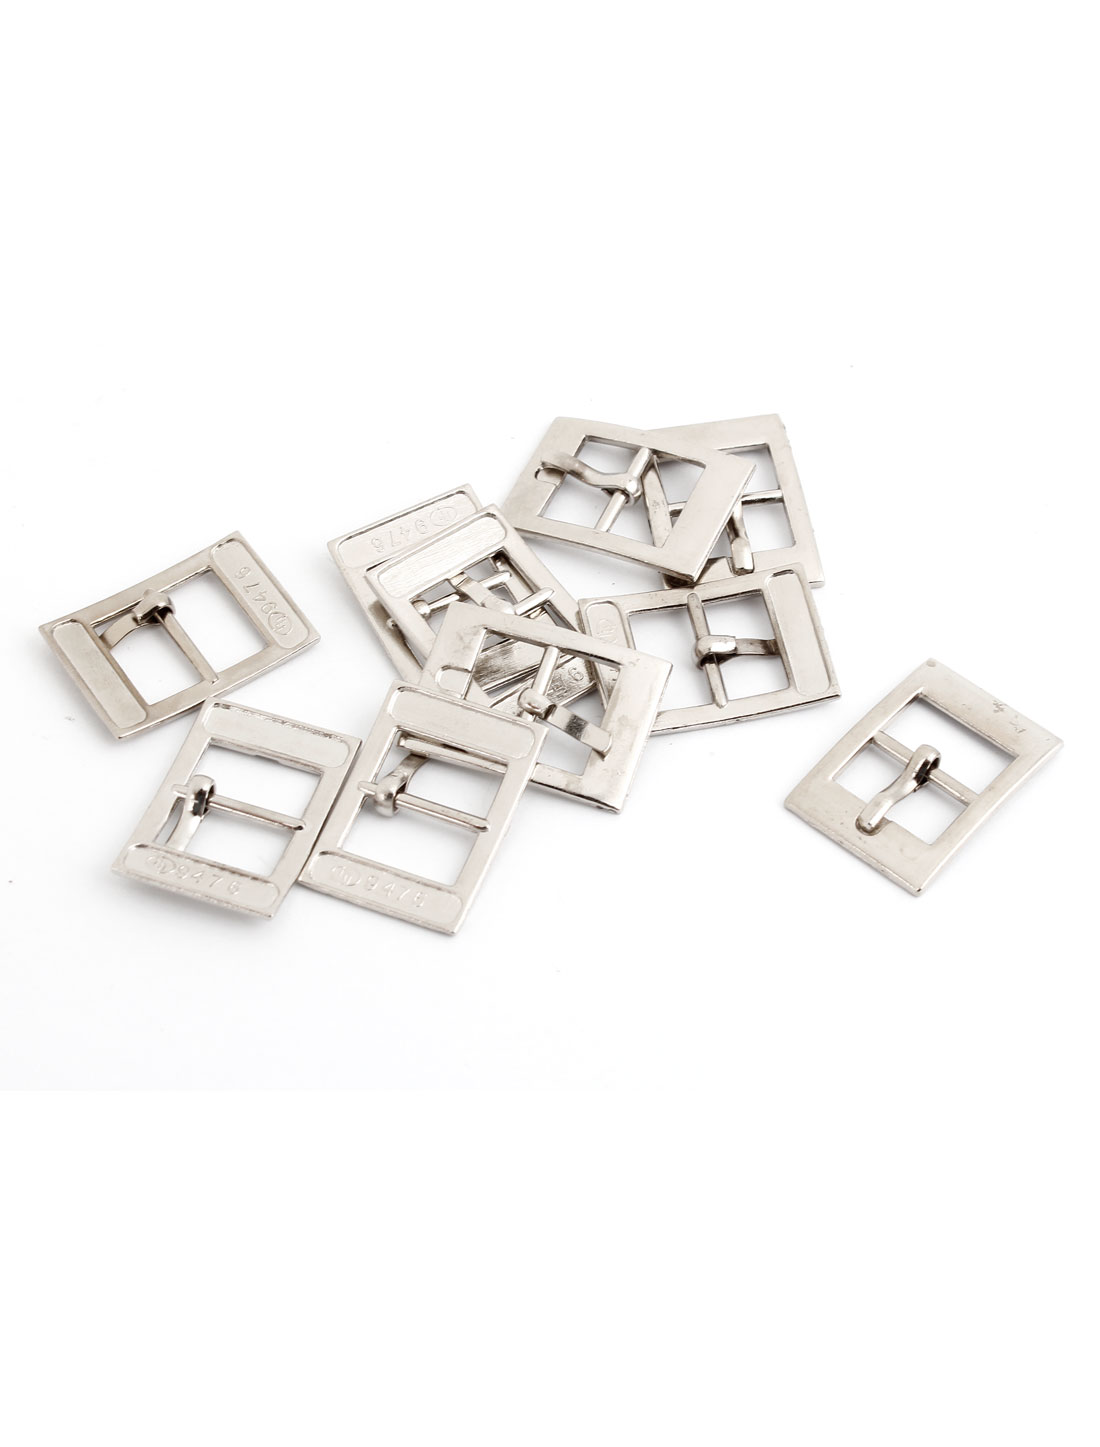 10 Pcs Metallic Single Prong Pin Buckles for 12mm Wide Shoes Belt